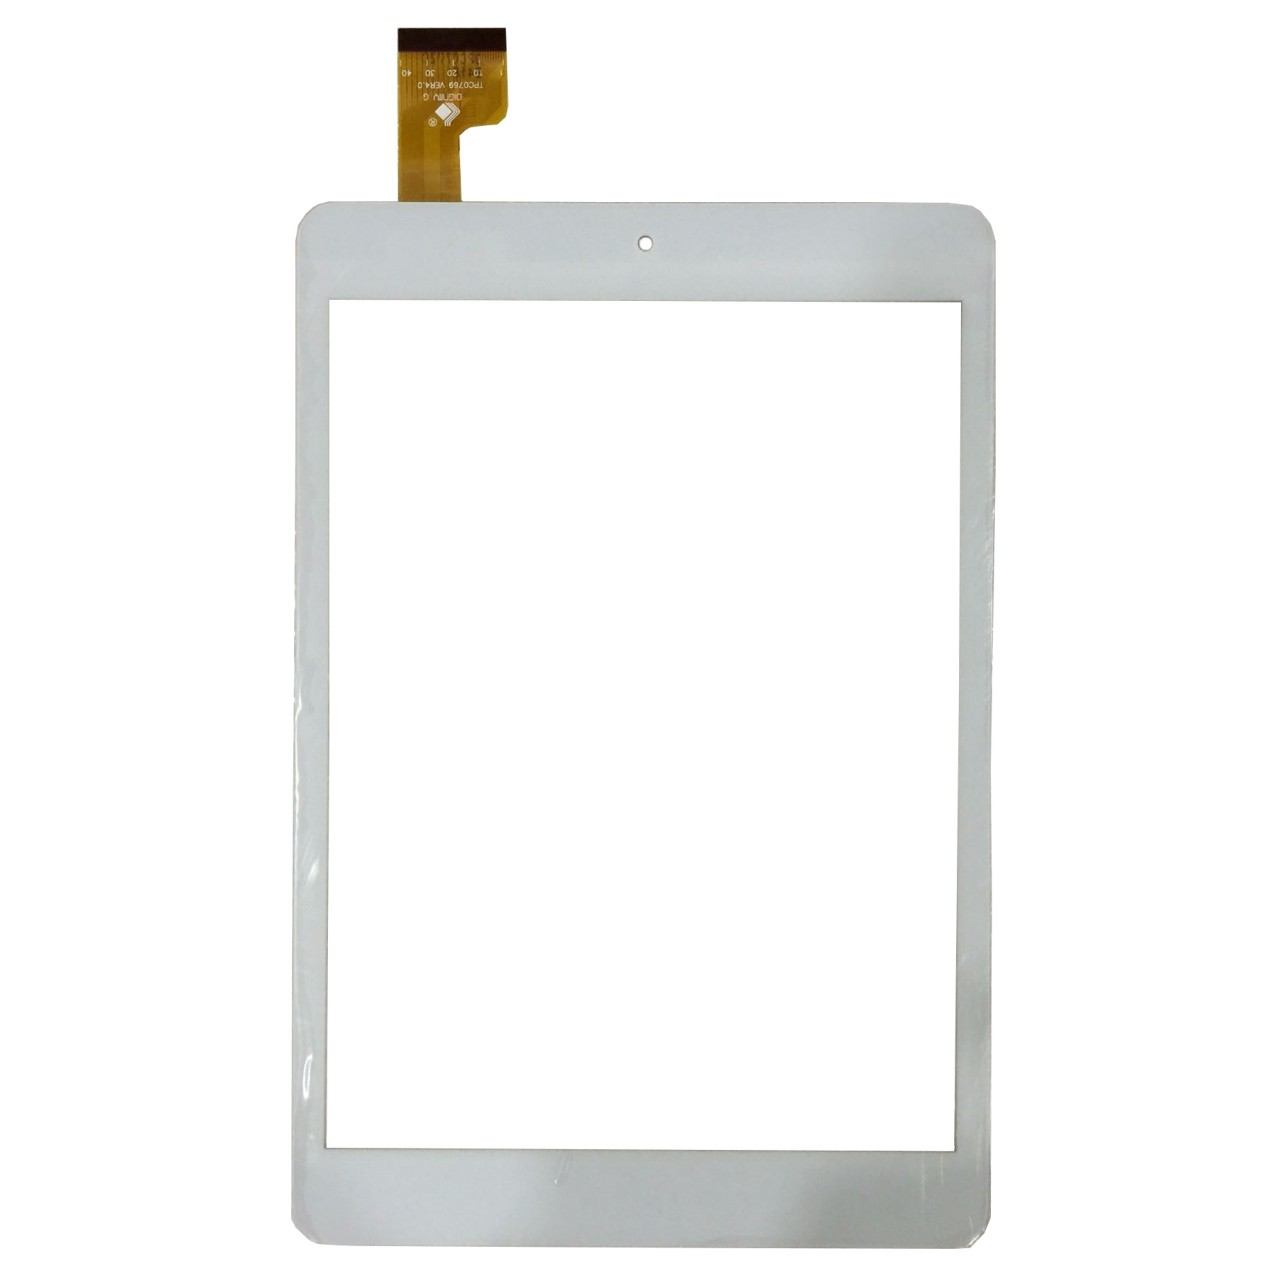 Touchscreen Digitizer eBoda Essential A700 Dual Core Alb Geam Sticla Tableta imagine powerlaptop.ro 2021